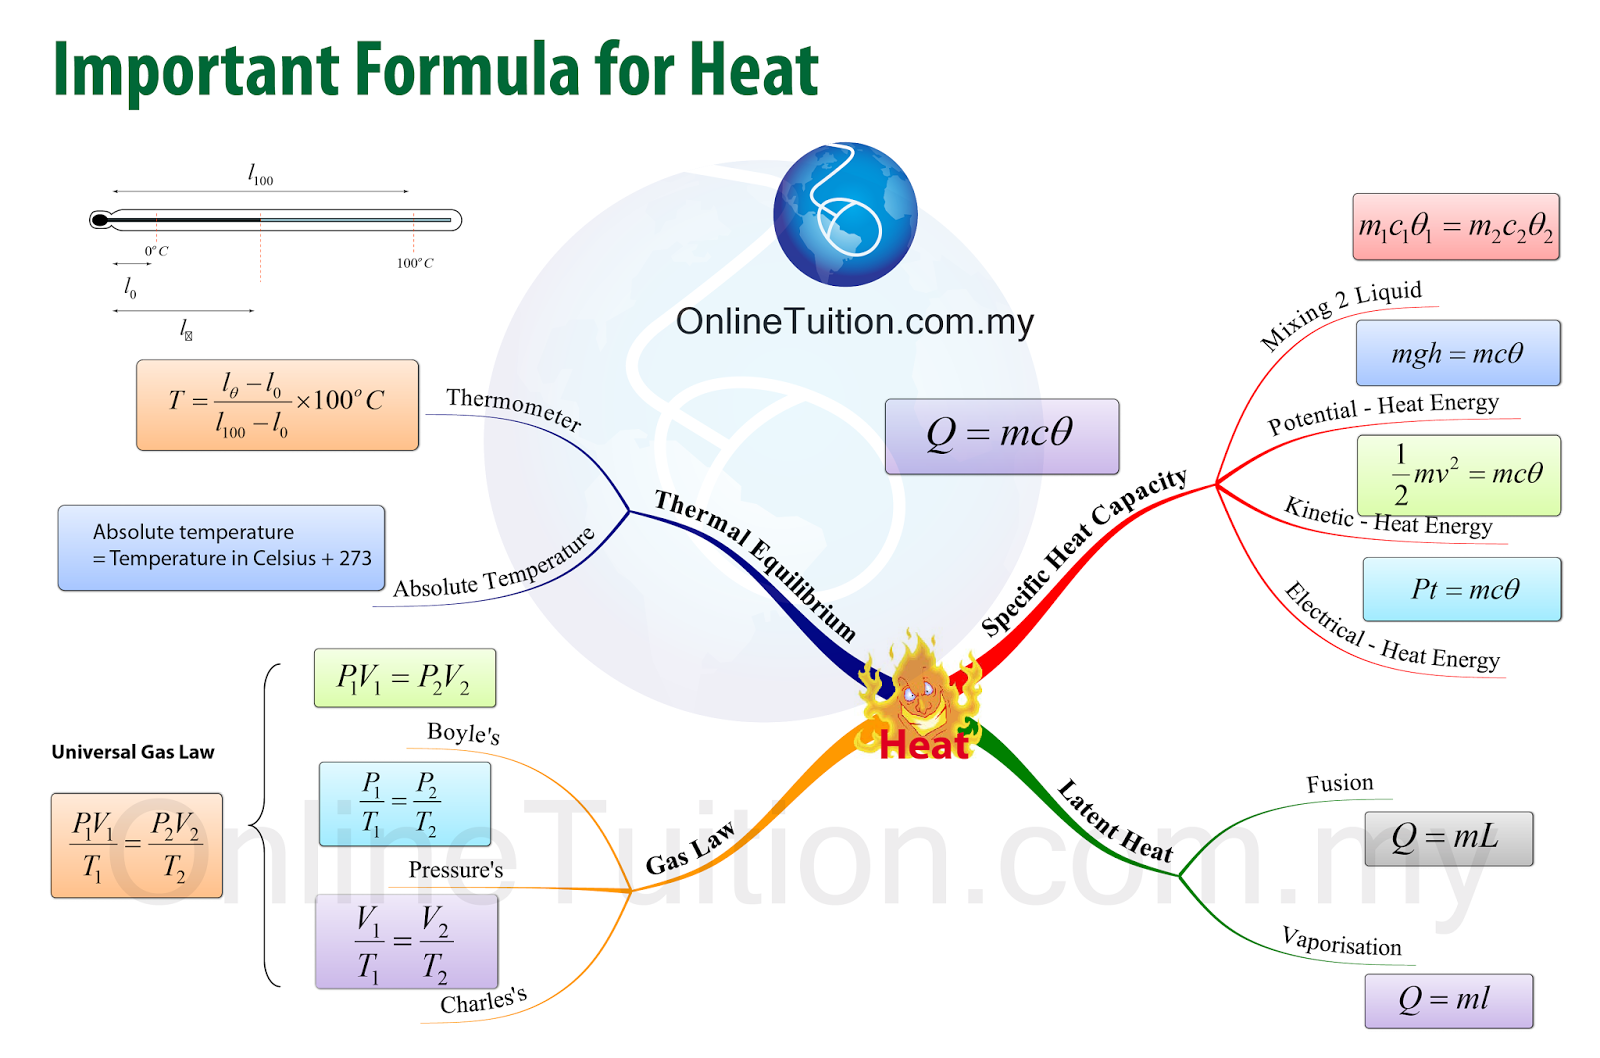 hight resolution of the image above shows the formulae that students need to know in malaysia spm physics syllabus in mind map form you may click on the image to enlarge it